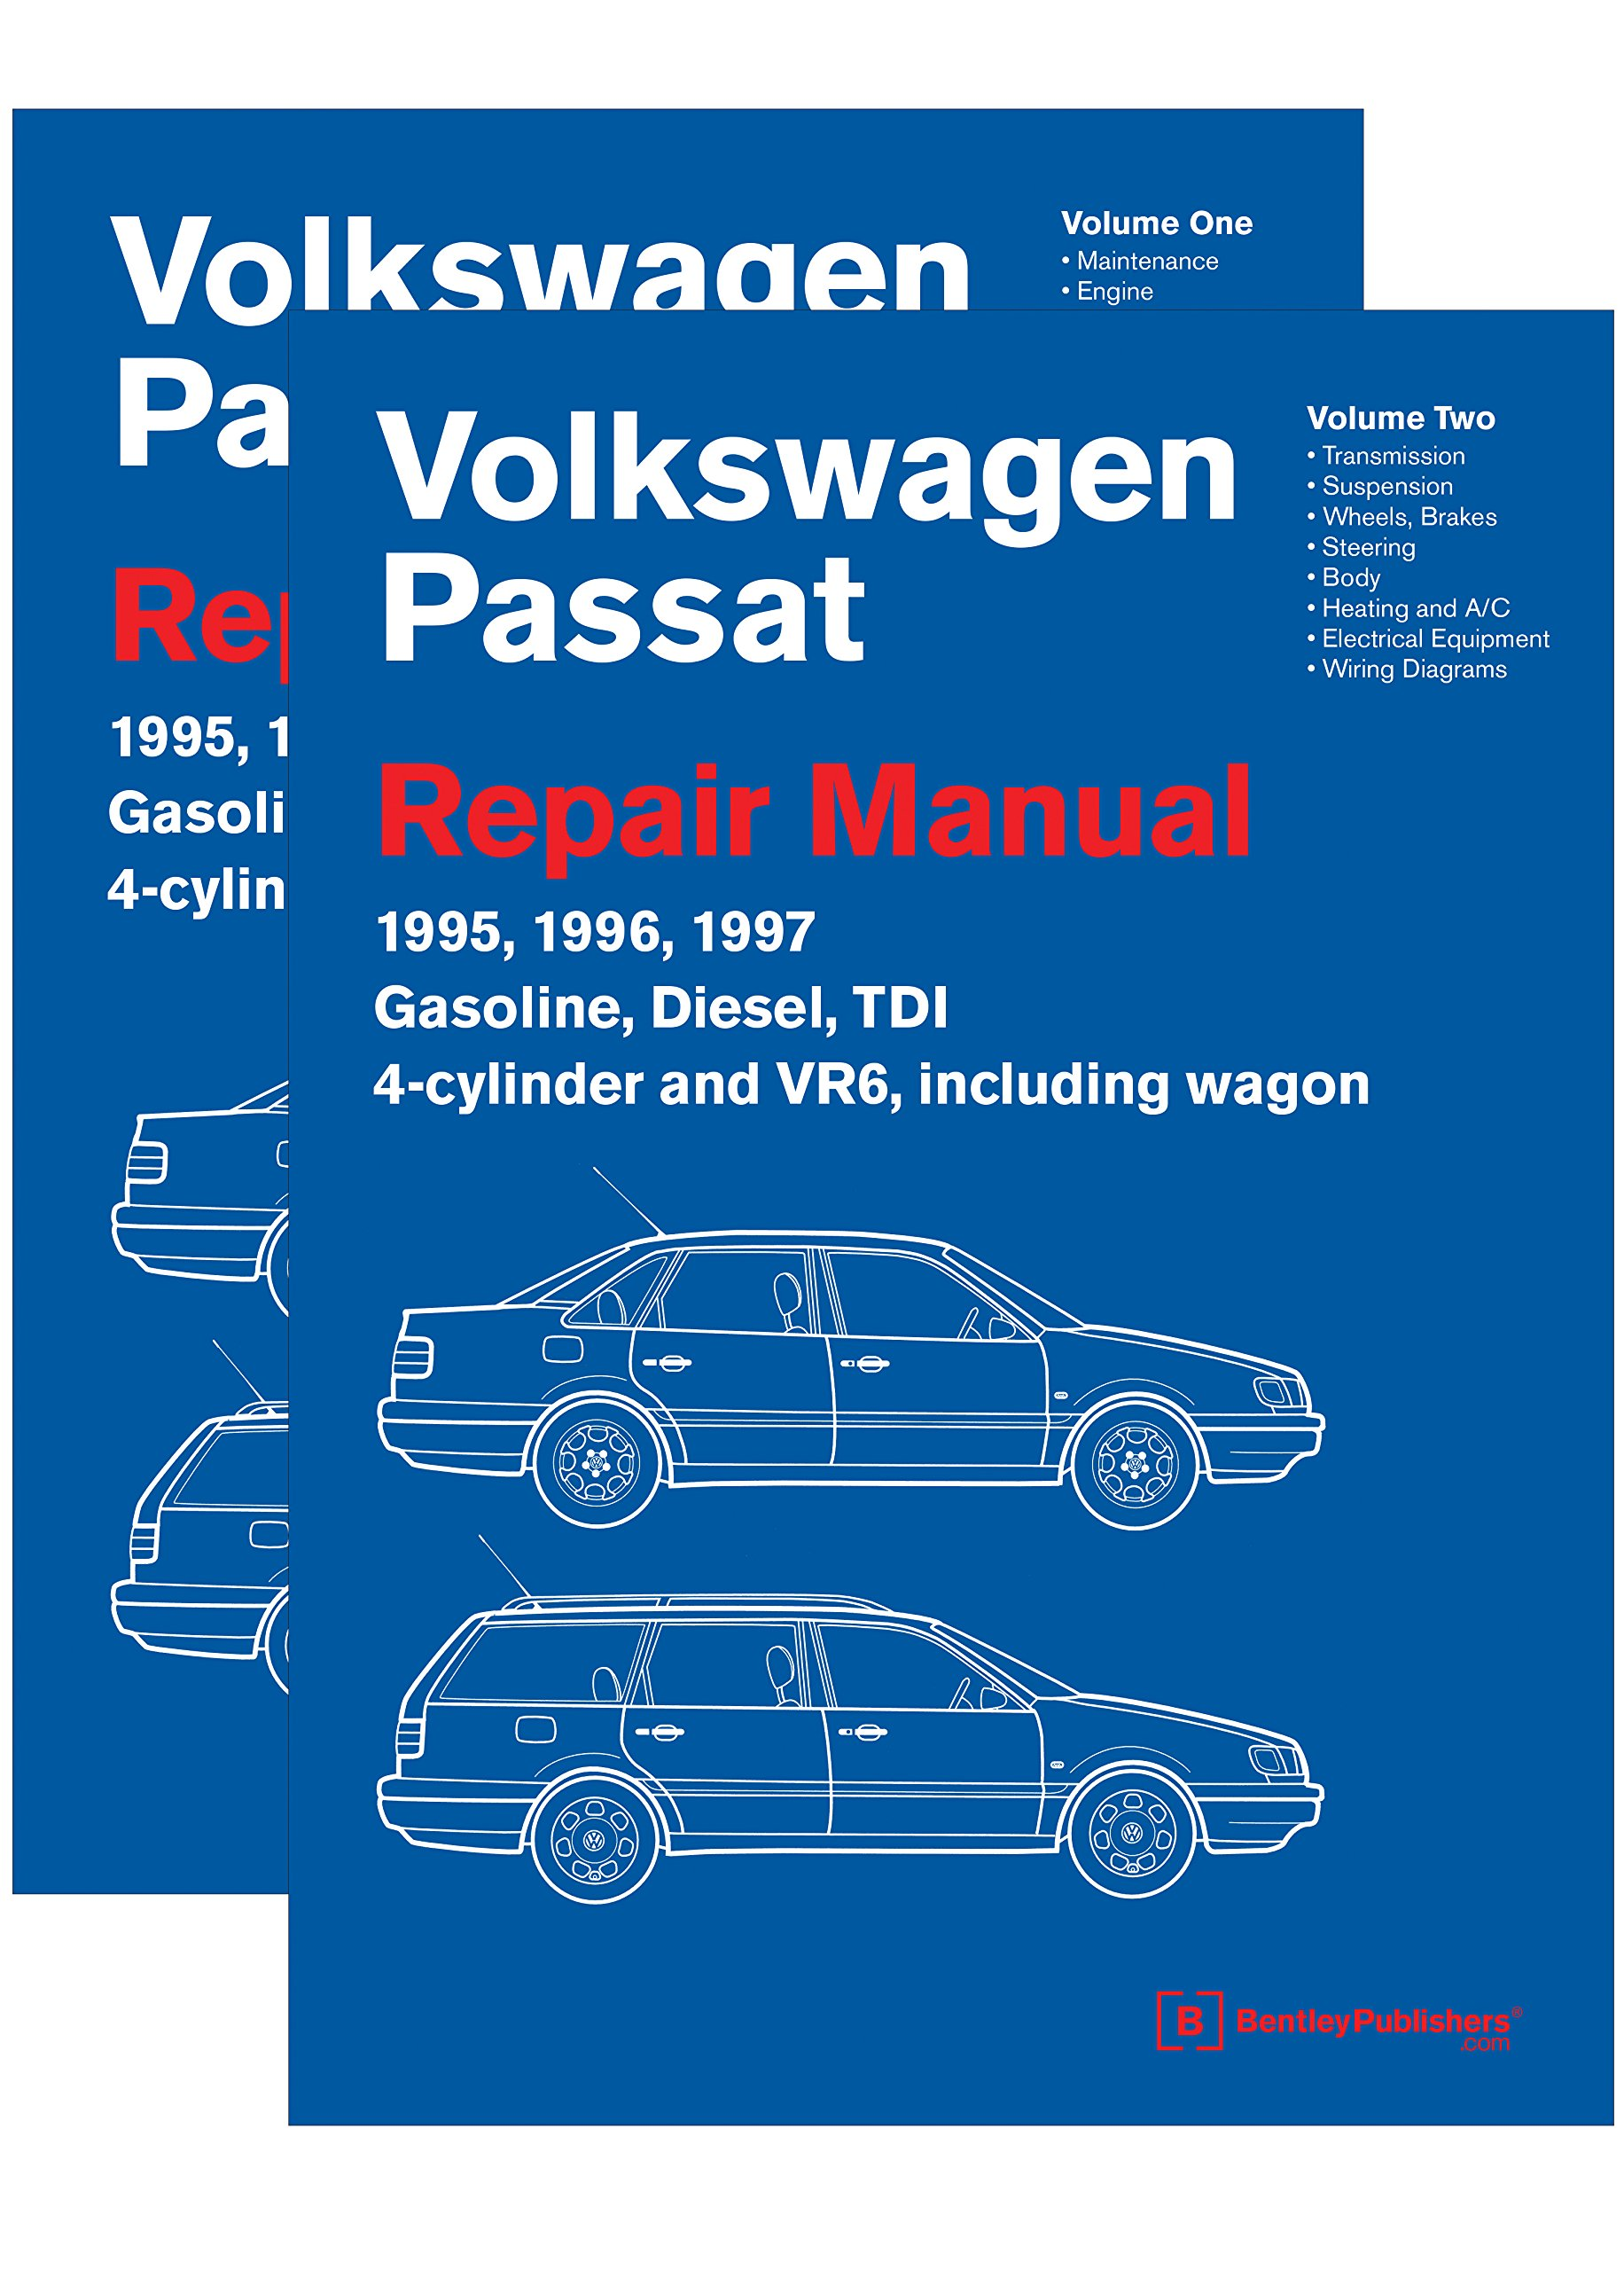 Volkswagen Passat B4 Repair Manual: 1995, 1996, 1997: Including Gasoline, Turbo Diesel, Tdi 4-Cylinder, Vr6, and Wagon: Amazon.es: Volkswagen Of America: ...